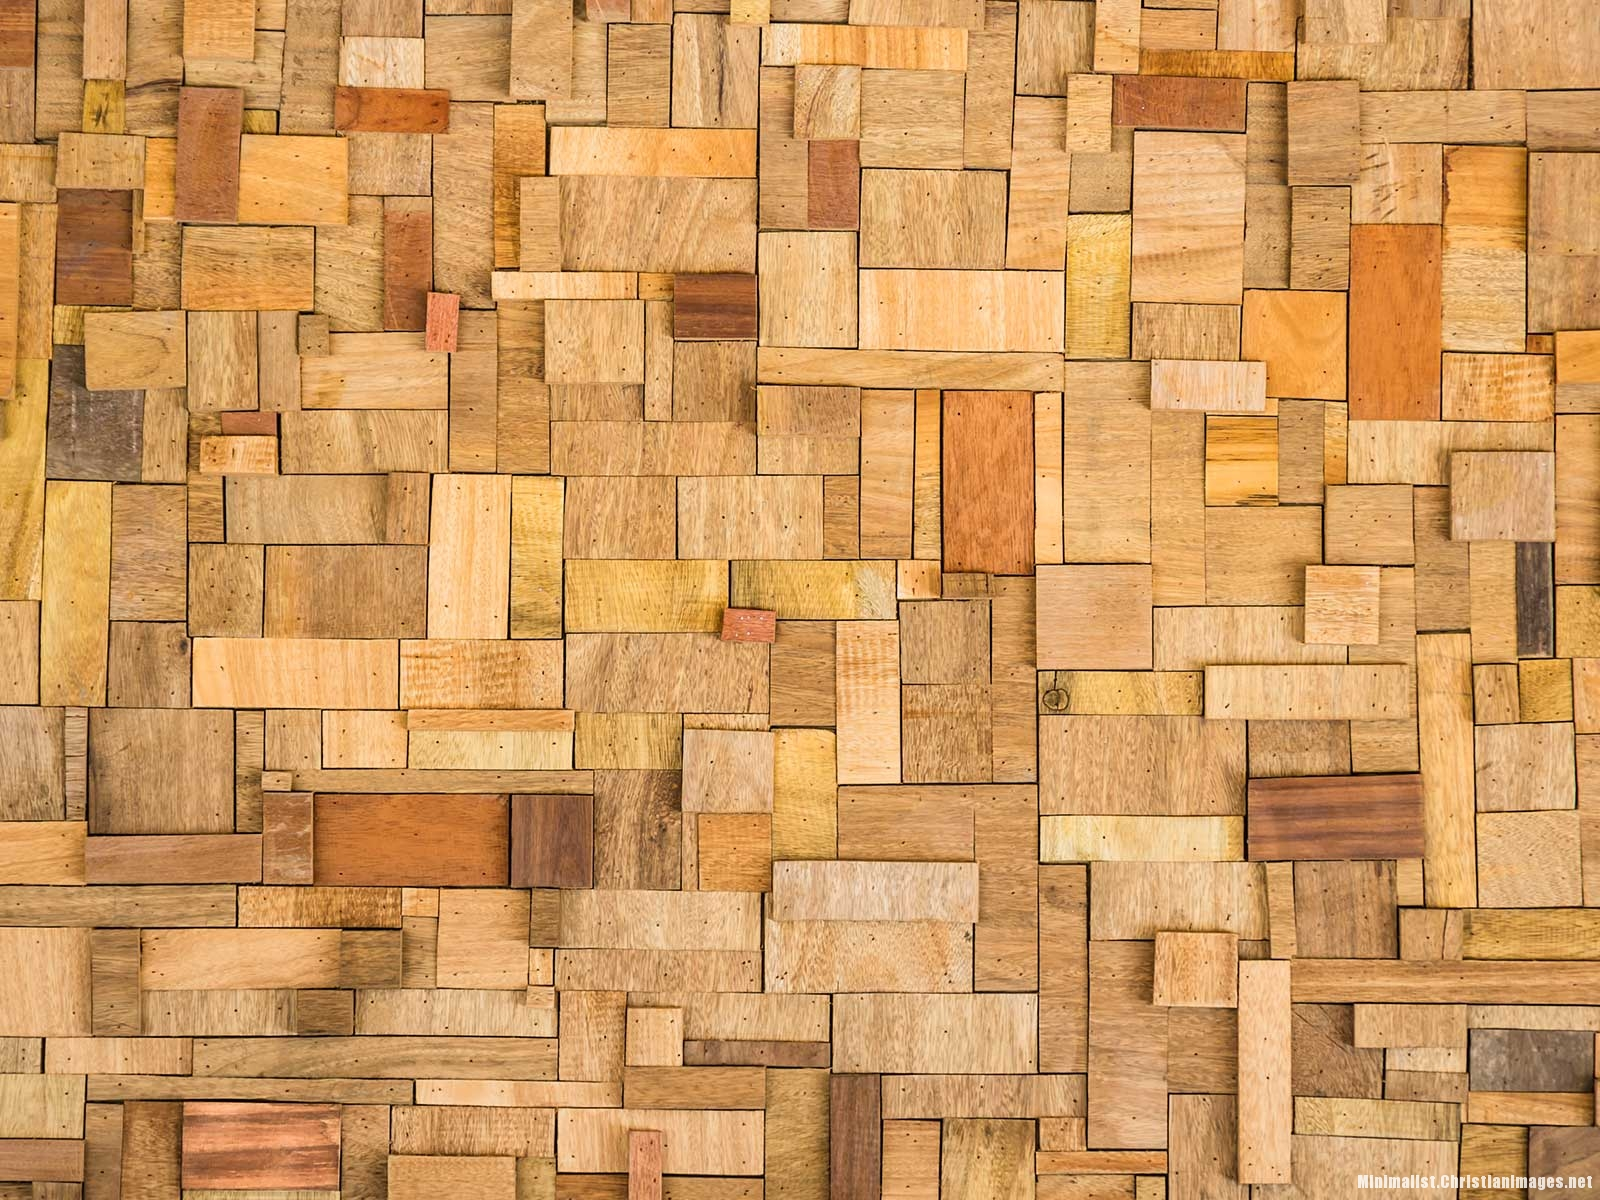 Wood Puzzle Blocks for Powerpoint Background